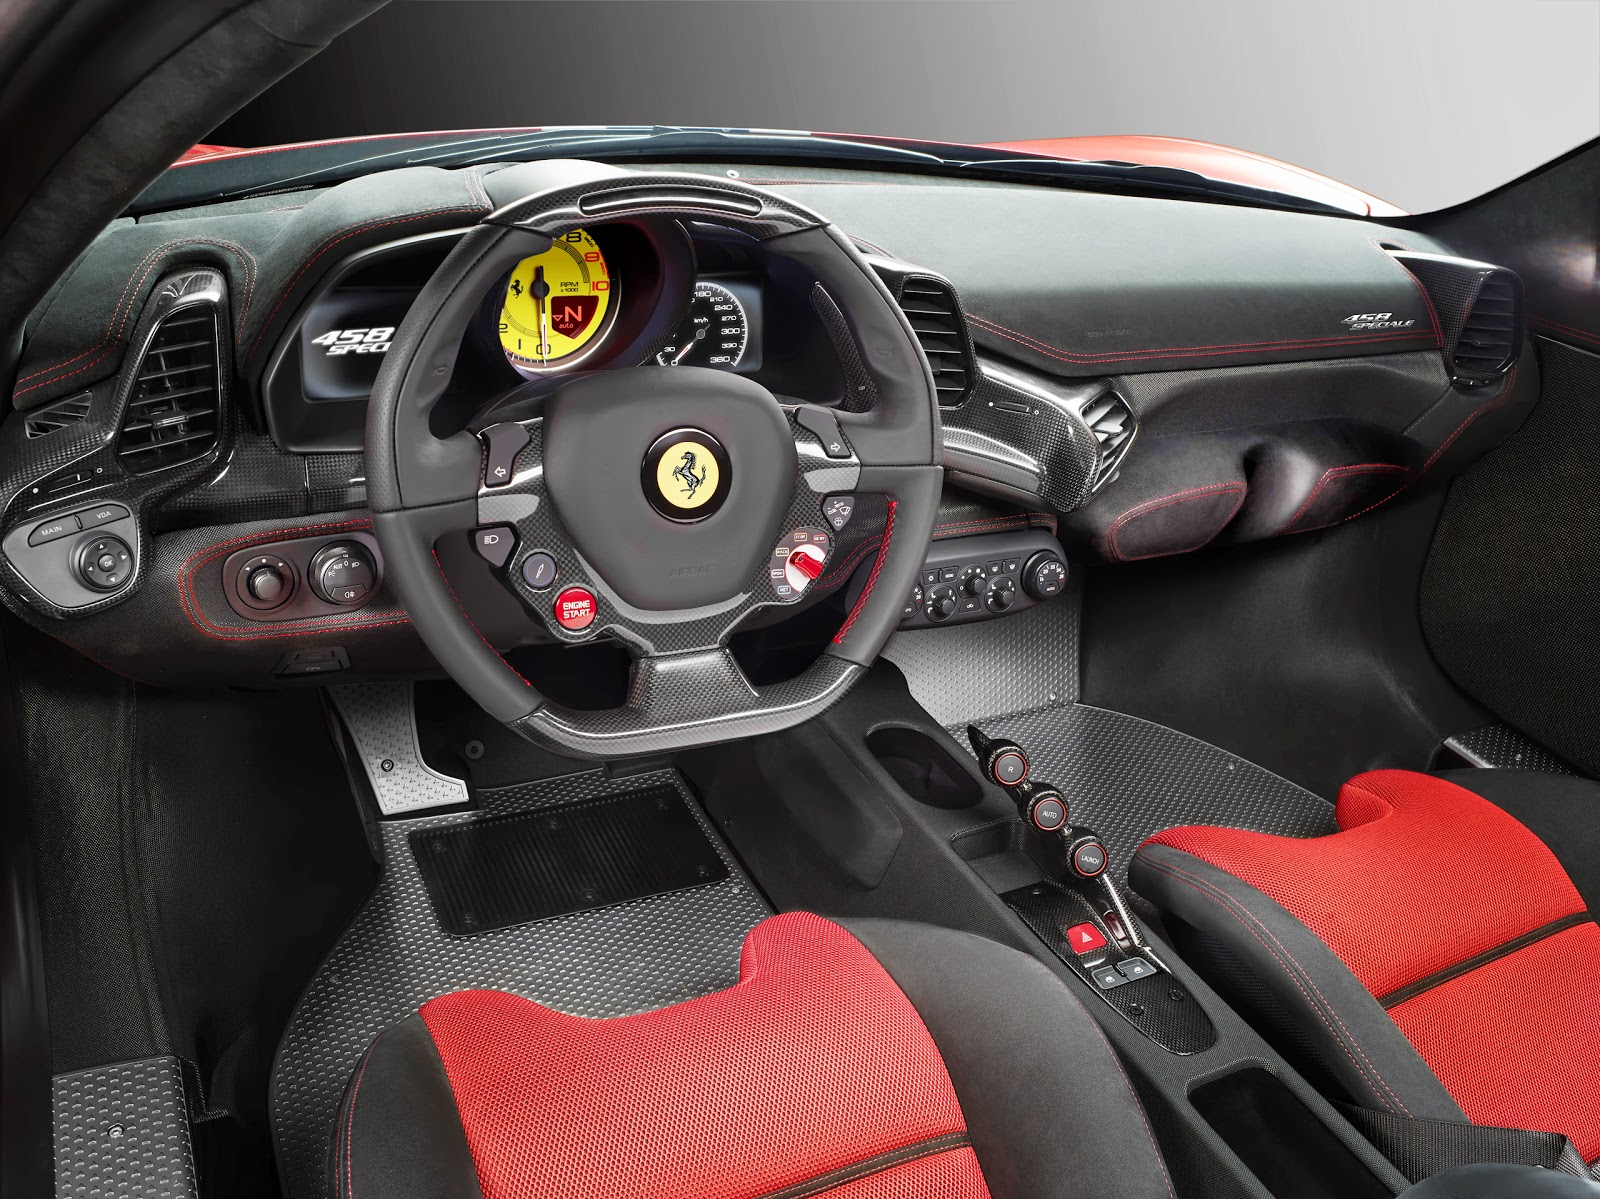 a7b8357cf287f9 The rest of the details on the Ferrari 458 Speciale that the folks at the  Prancing Horse have seen fit to give us are below in the tech specs and  press ...